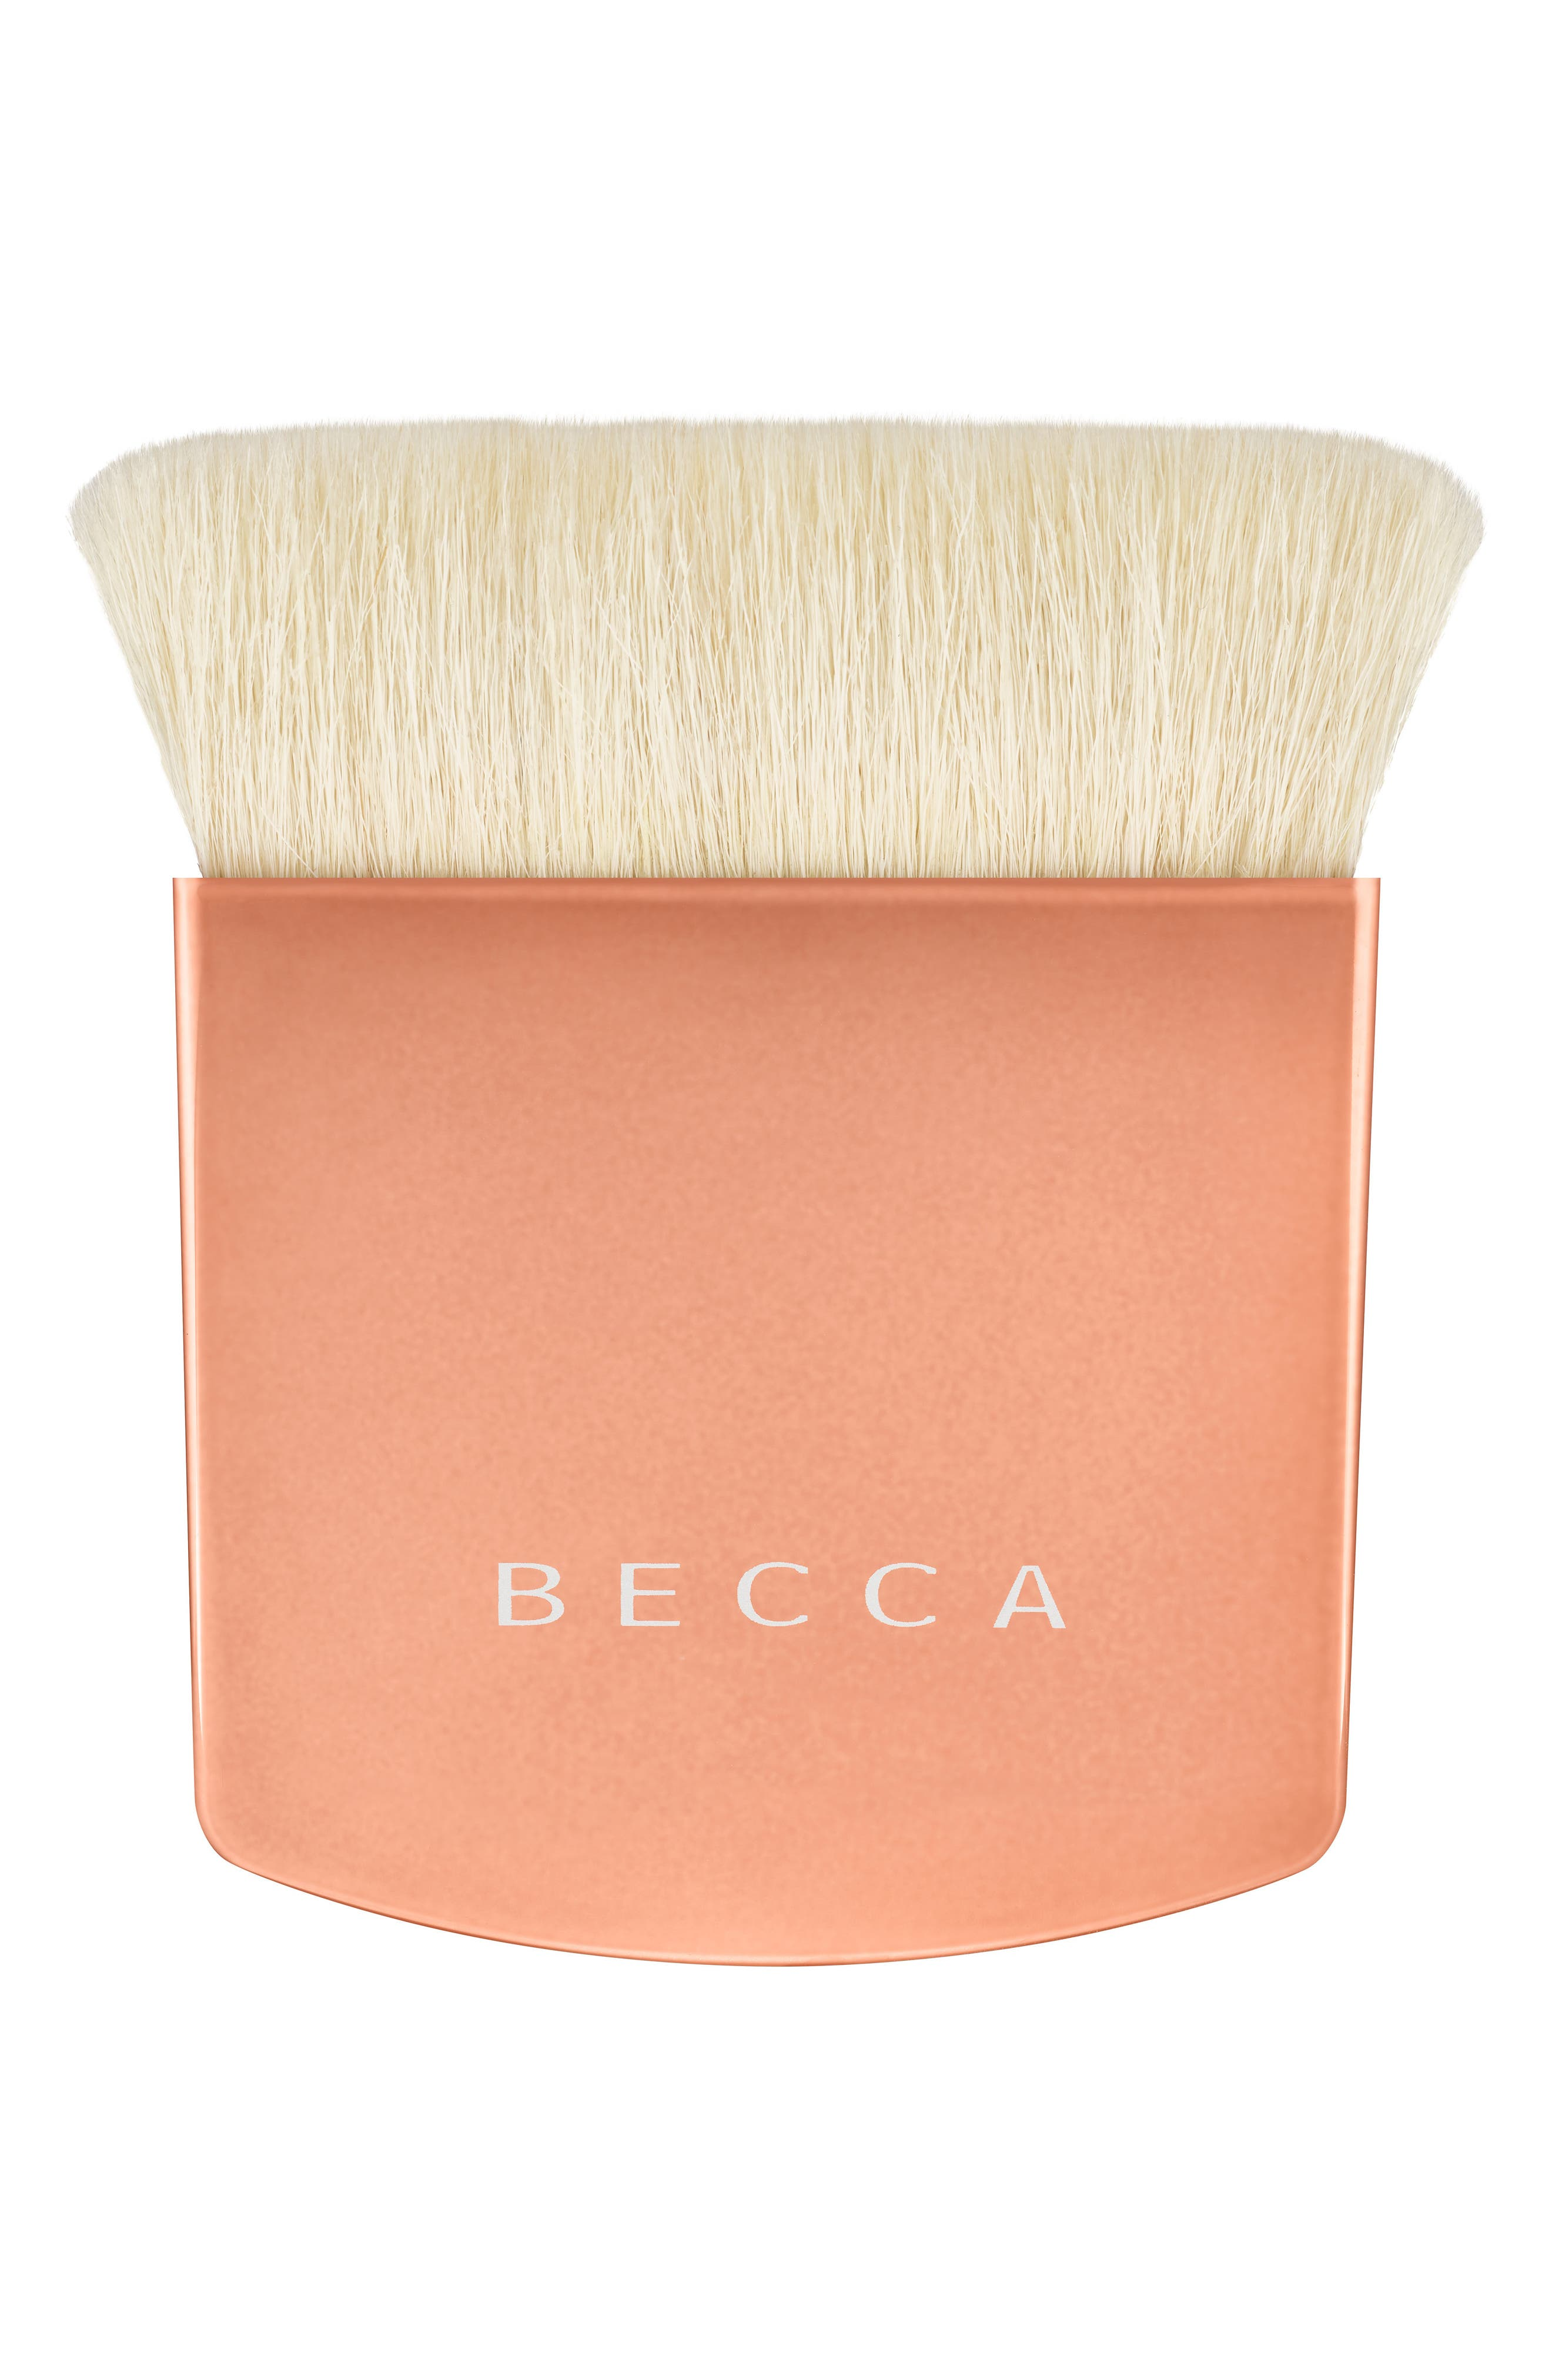 BECCA The One Perfecting Brush,                             Alternate thumbnail 3, color,                             NO COLOR